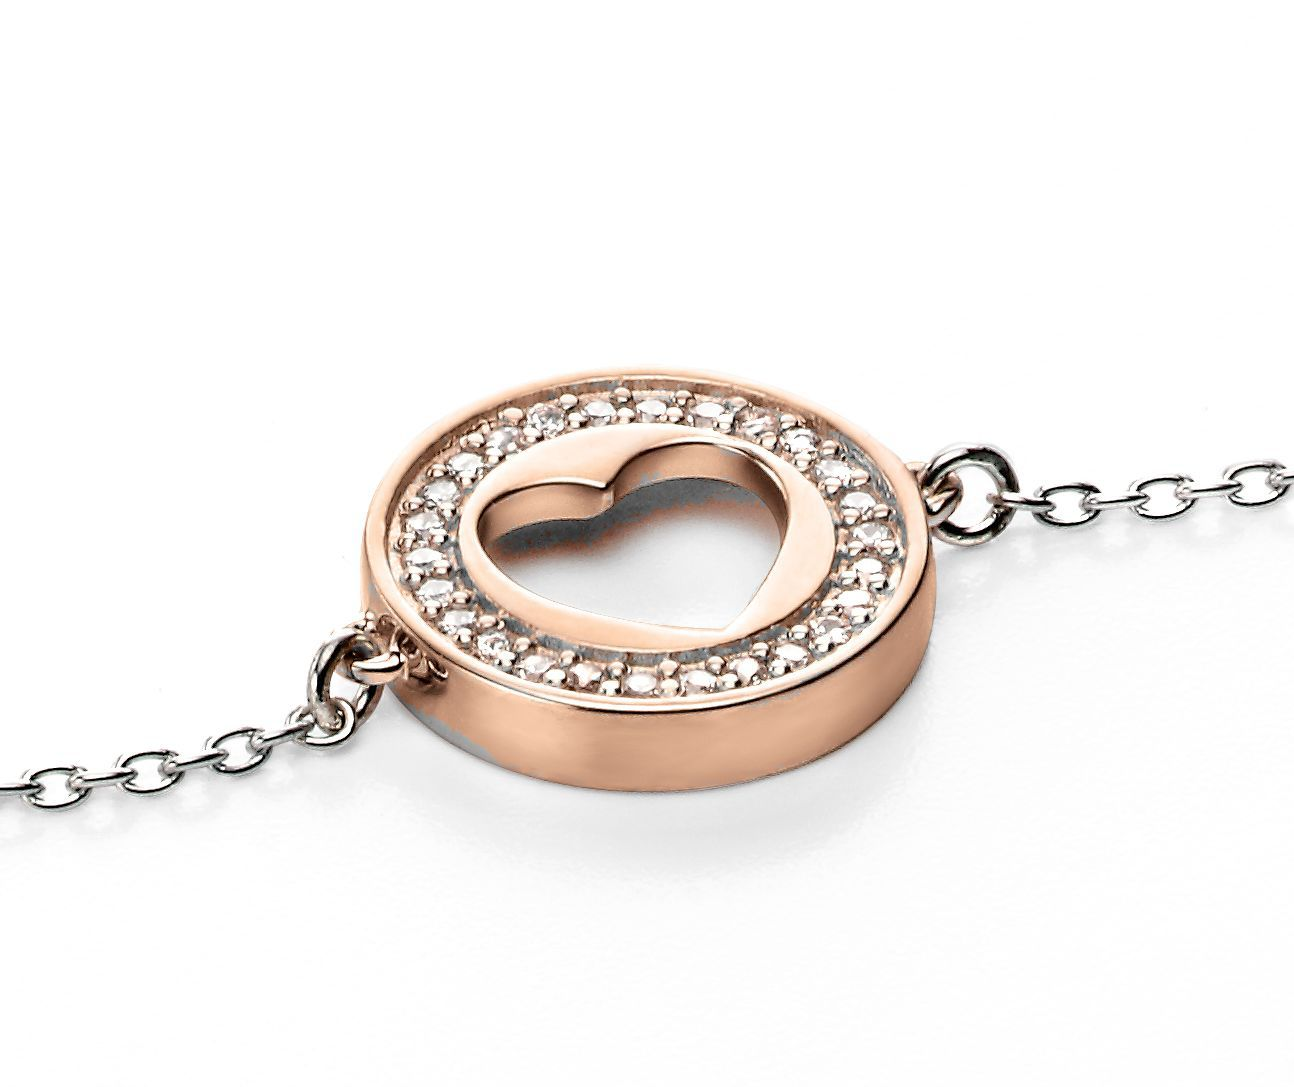 Silver bracelet with rose gold cutout heart